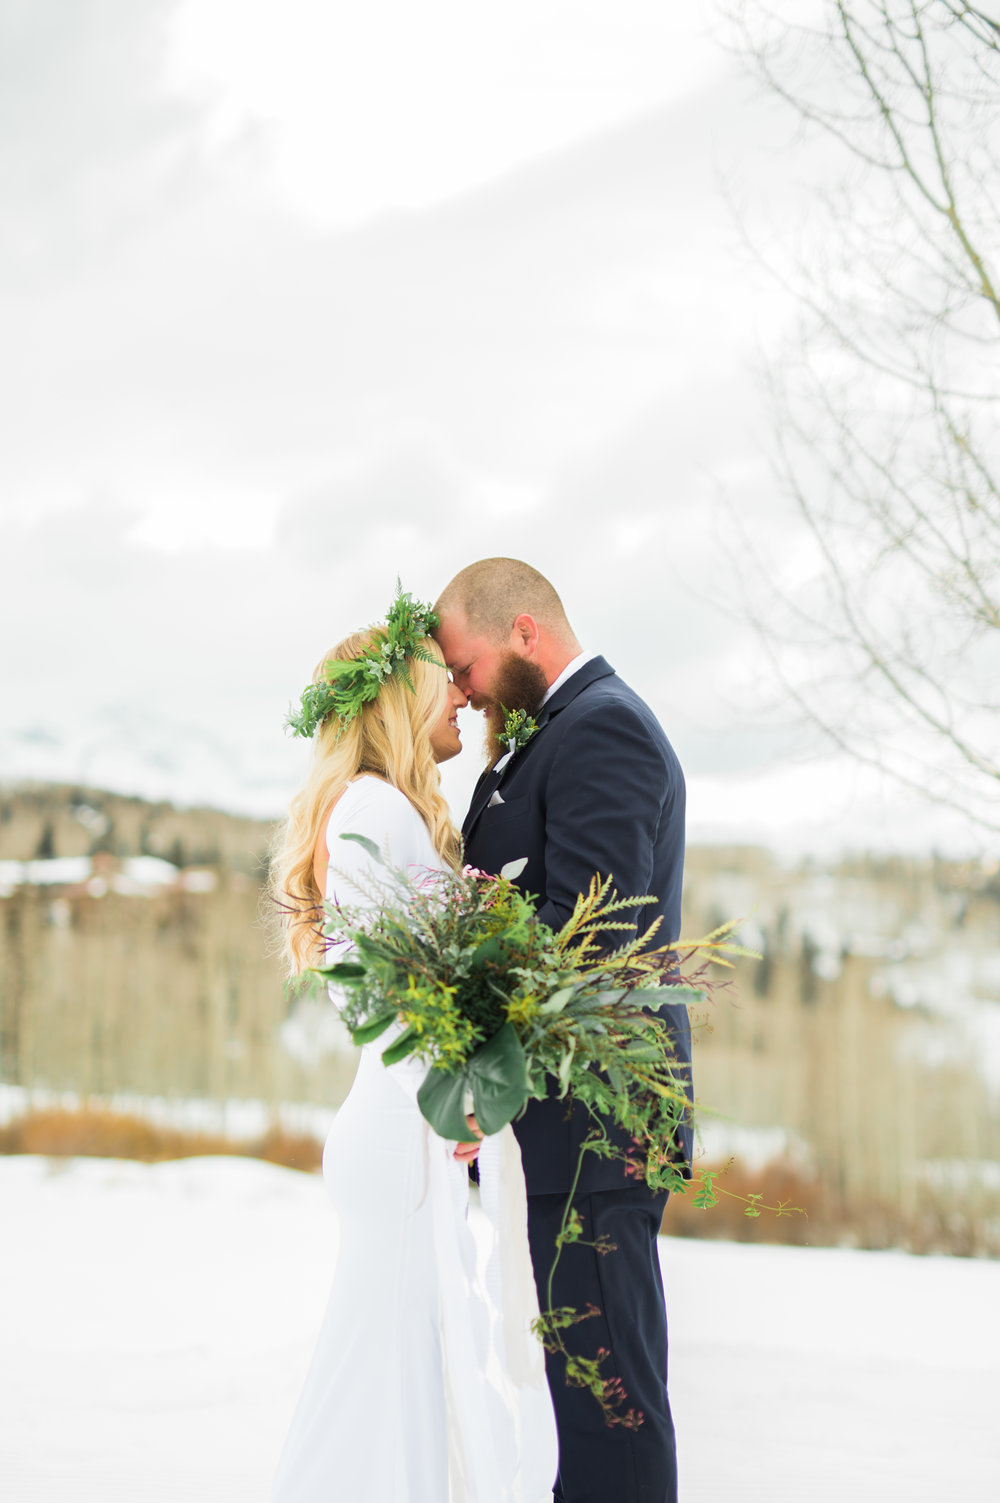 telluride snow wedding Parie designs green bouquet